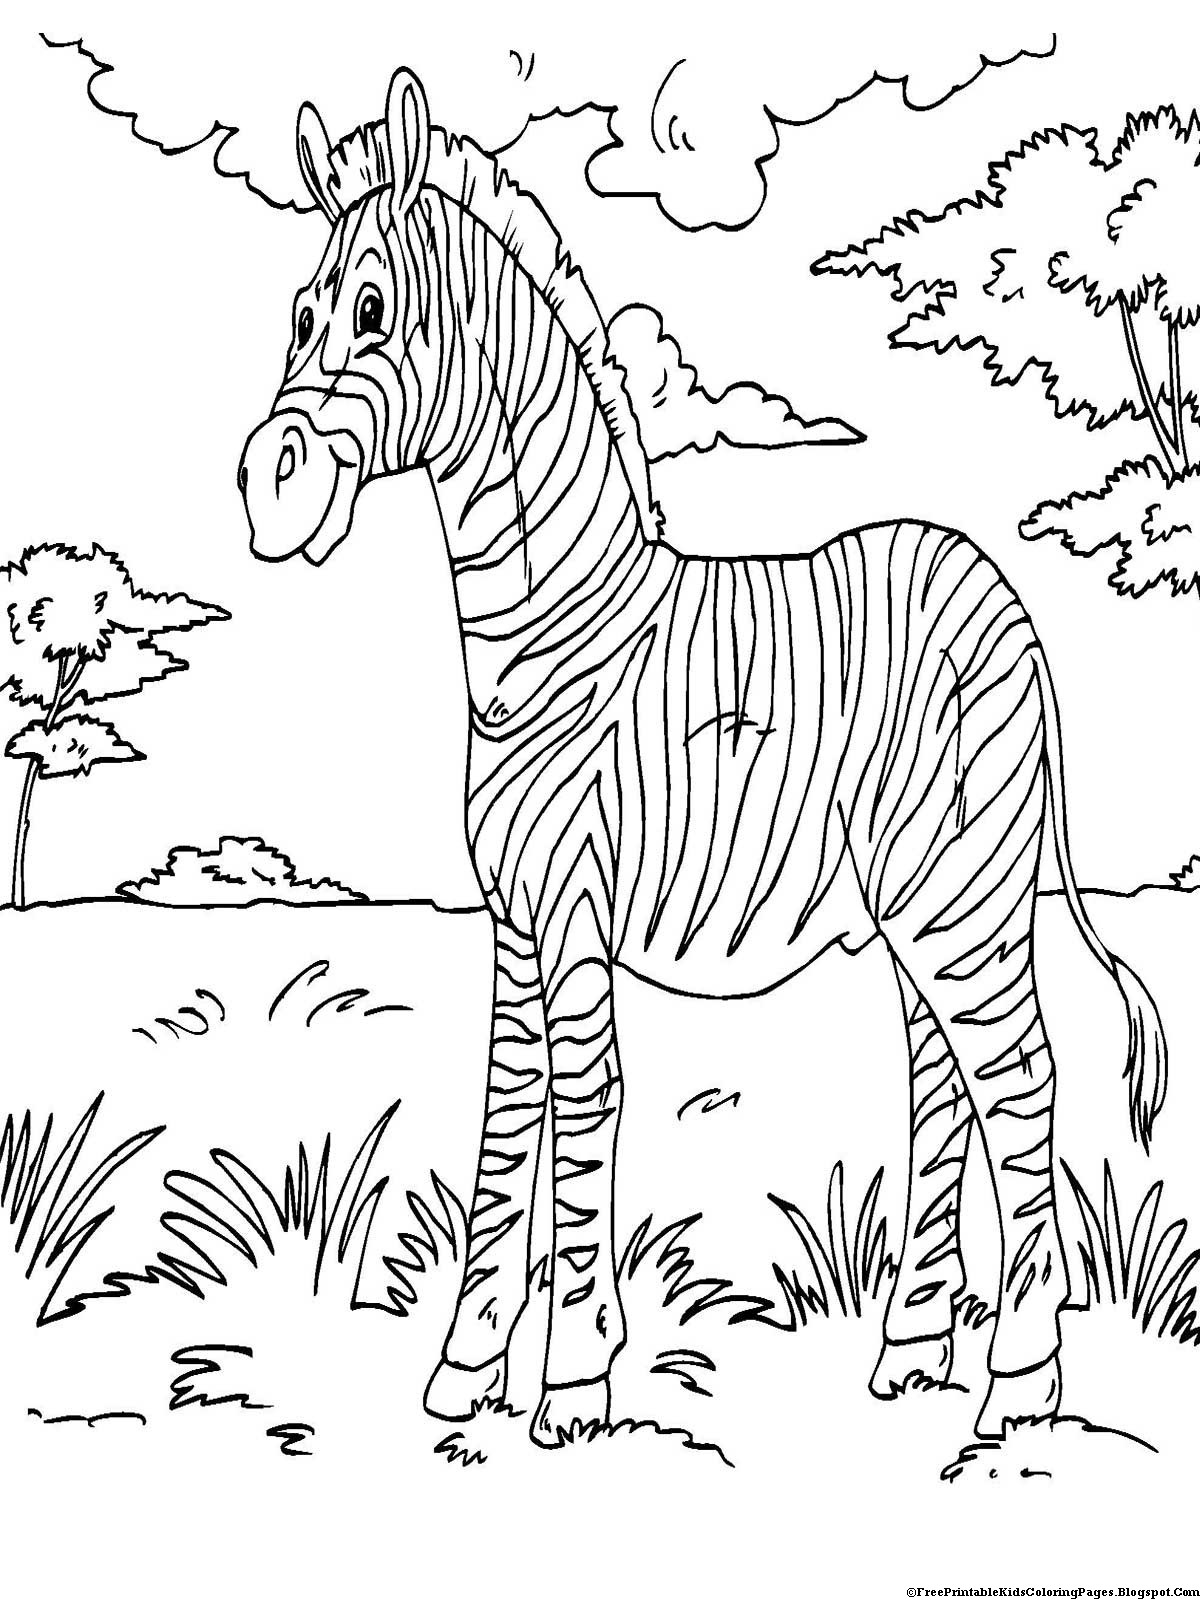 Coloring Kids  Zebra Coloring Pages Free Printable Kids Coloring Pages